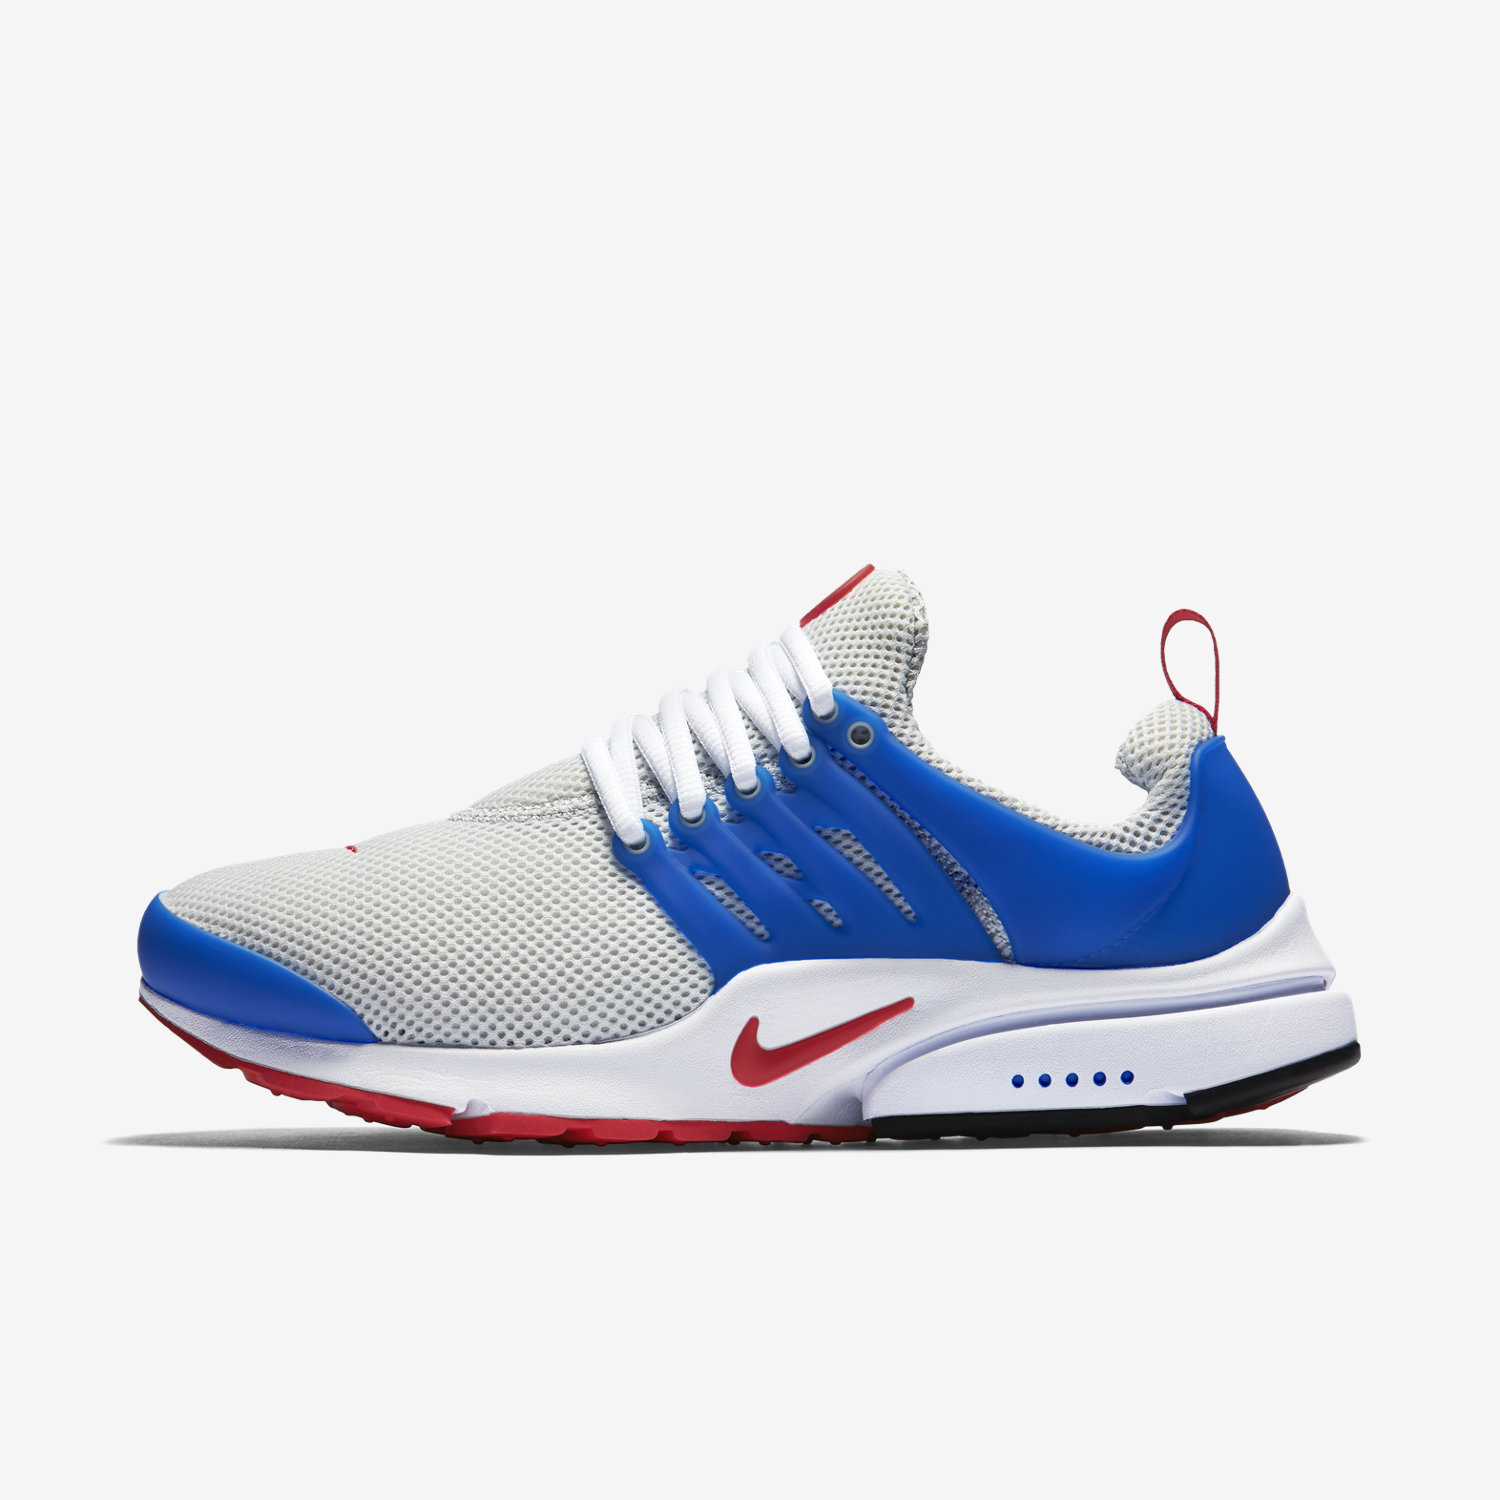 http://images.nike.com/is/image/DotCom/PDP_HERO_ZOOM/NIKE-AIR-PRESTO-ESSENTIAL-848187_004_A_PREM.jpg